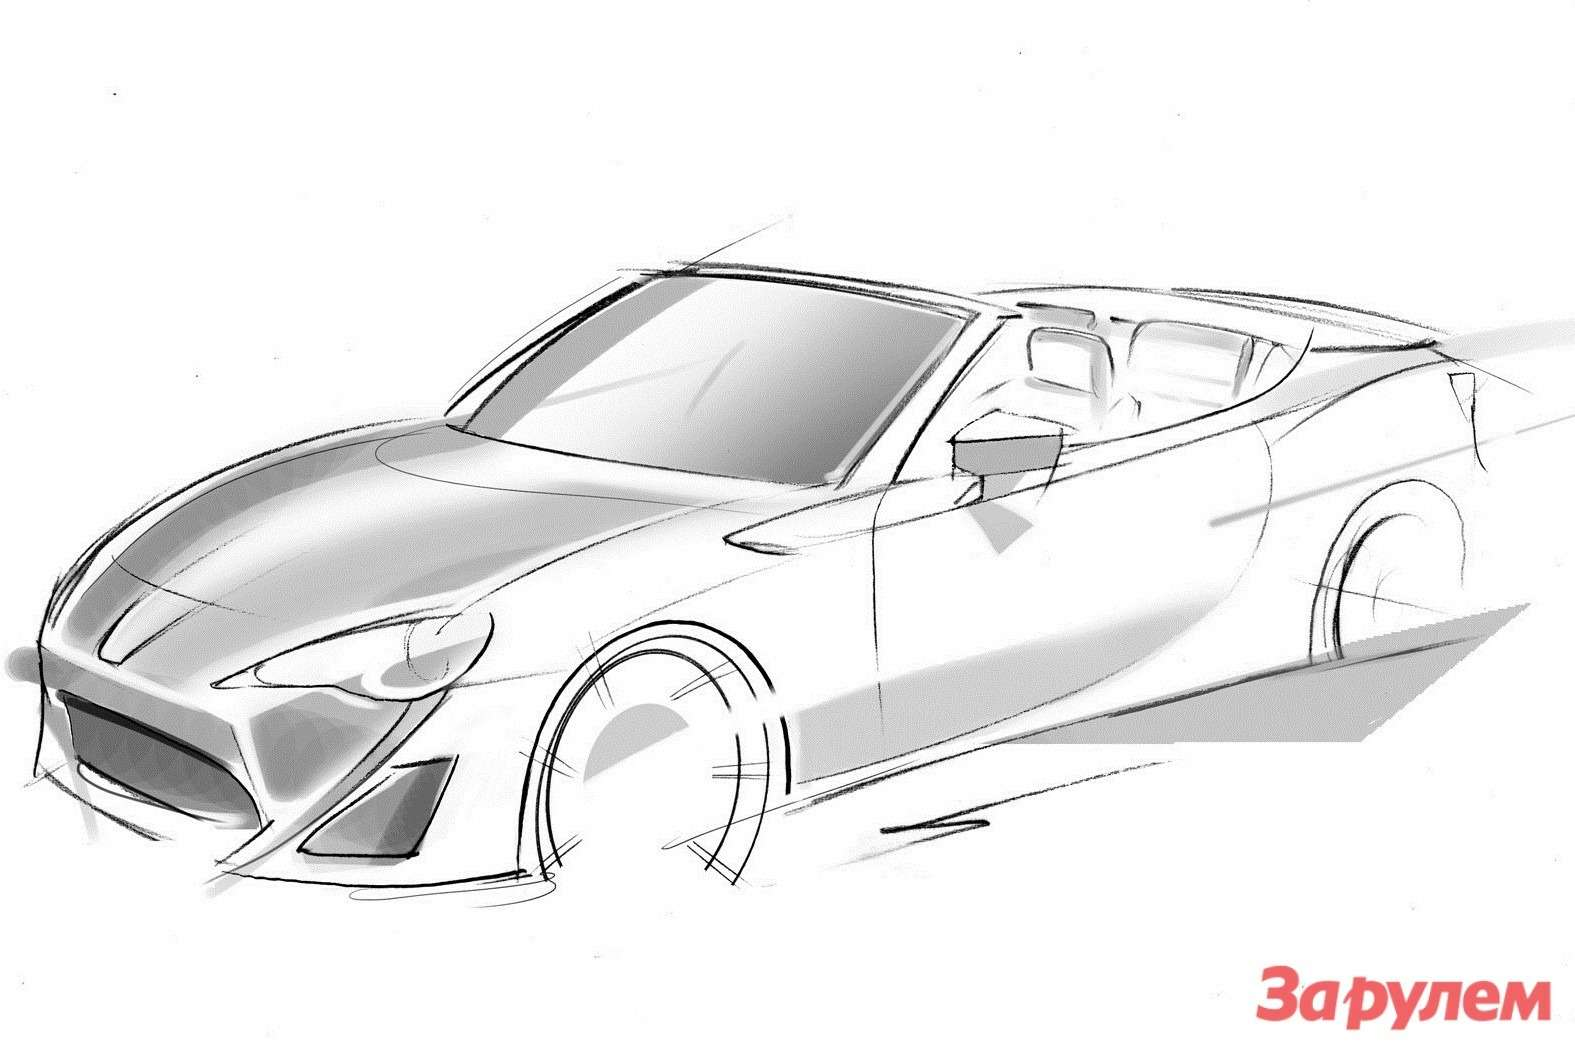 Toyota GT86Open Concept first sketch